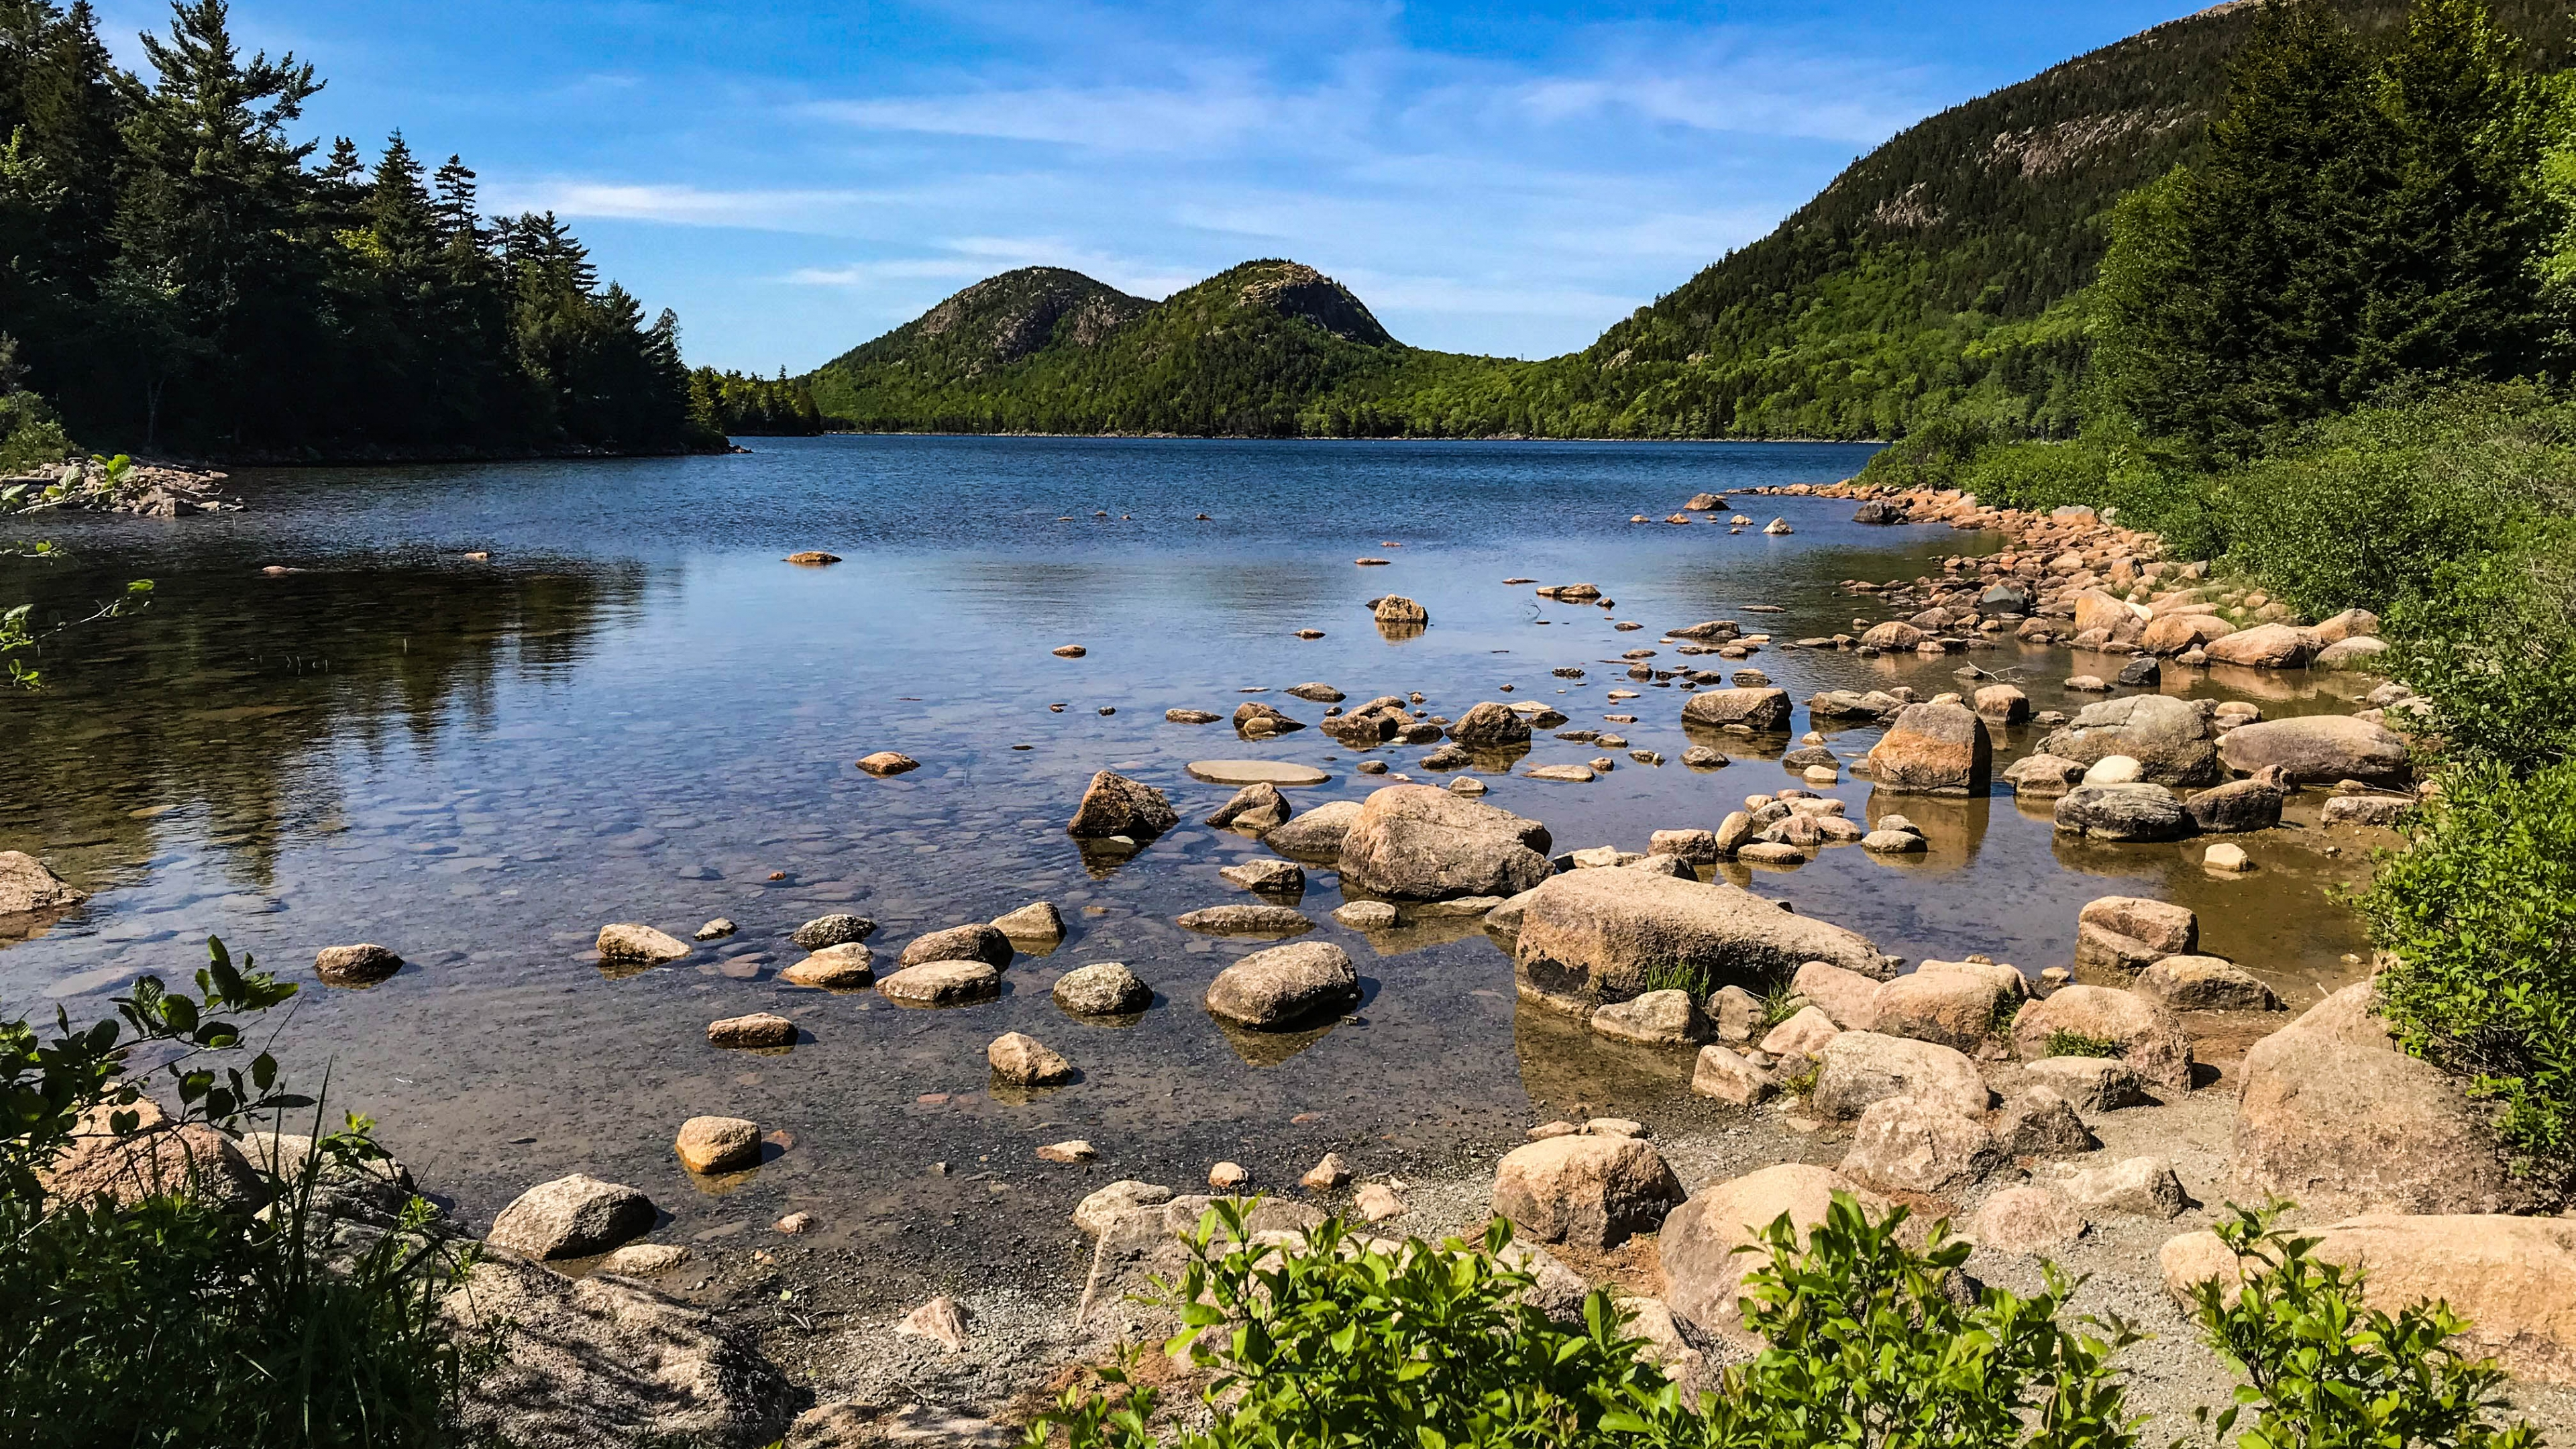 Rocky shoreline around a calm pond. In the distance, rolling green mountains